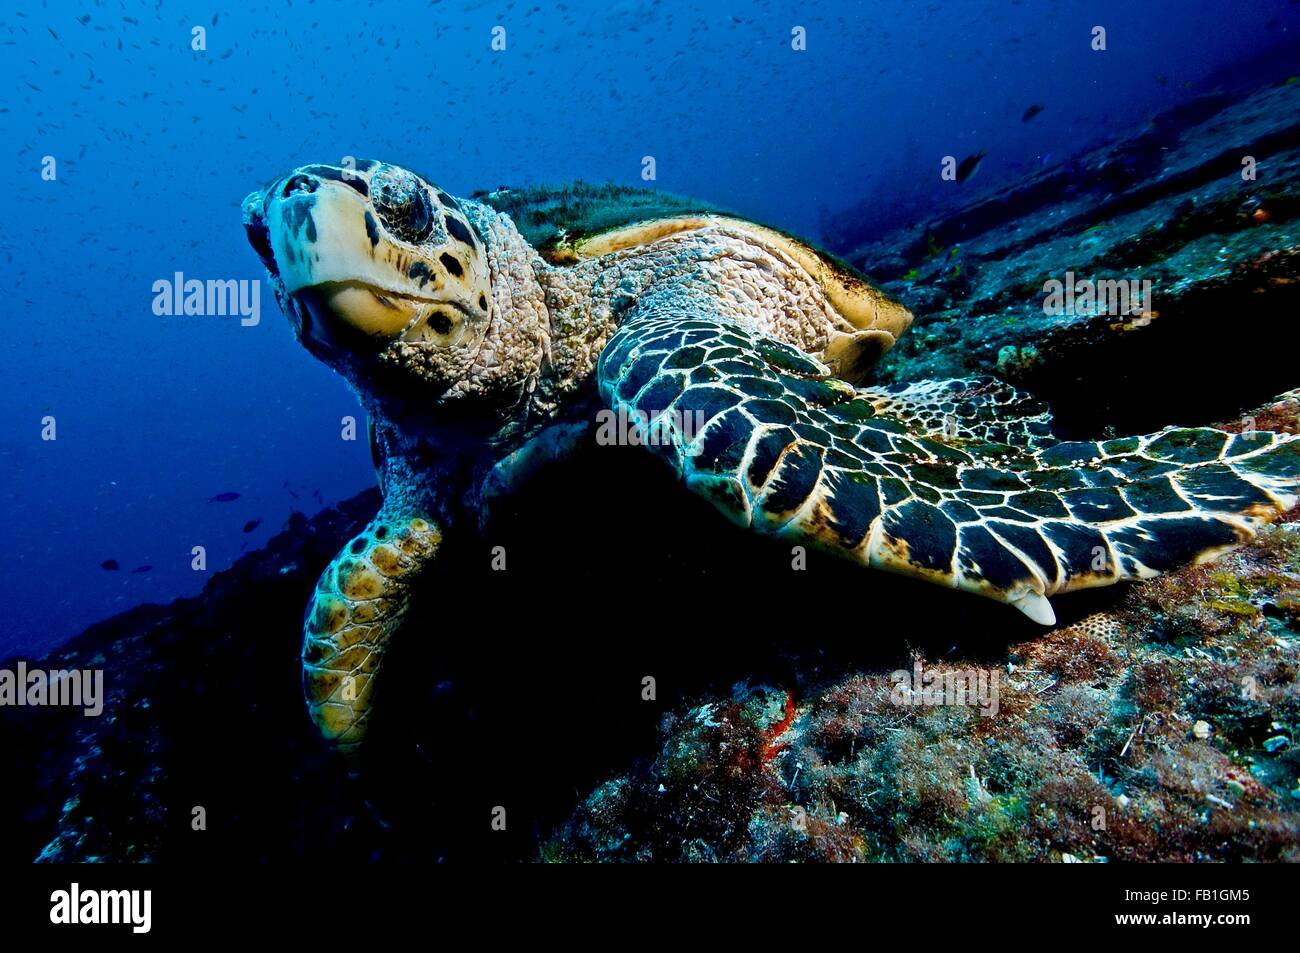 Large turtle resting on top of a wreck, oblivious to divers, Isla Mujeres, Mexico - Stock Image